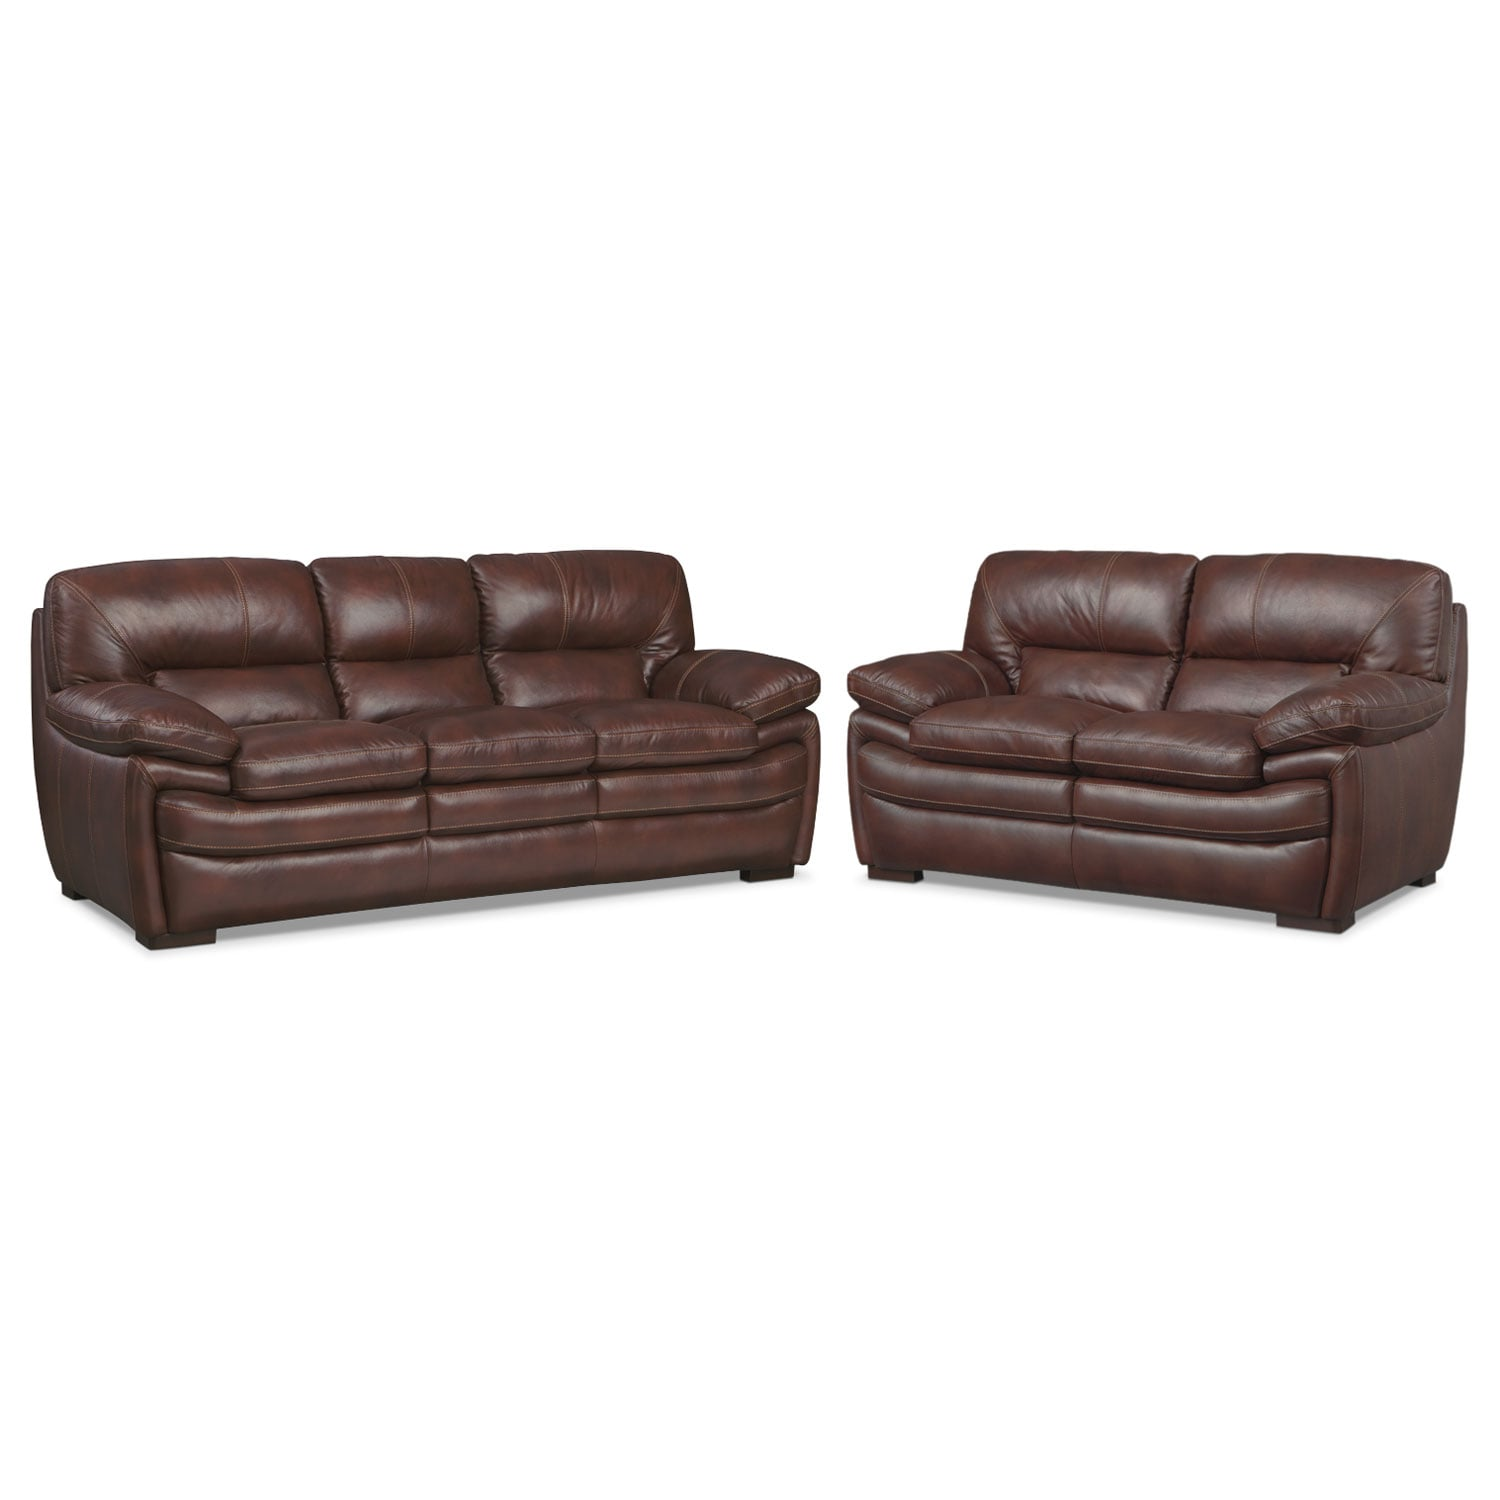 chestnut colored leather sofa best sleeper consumer reports peyton american signature furniture